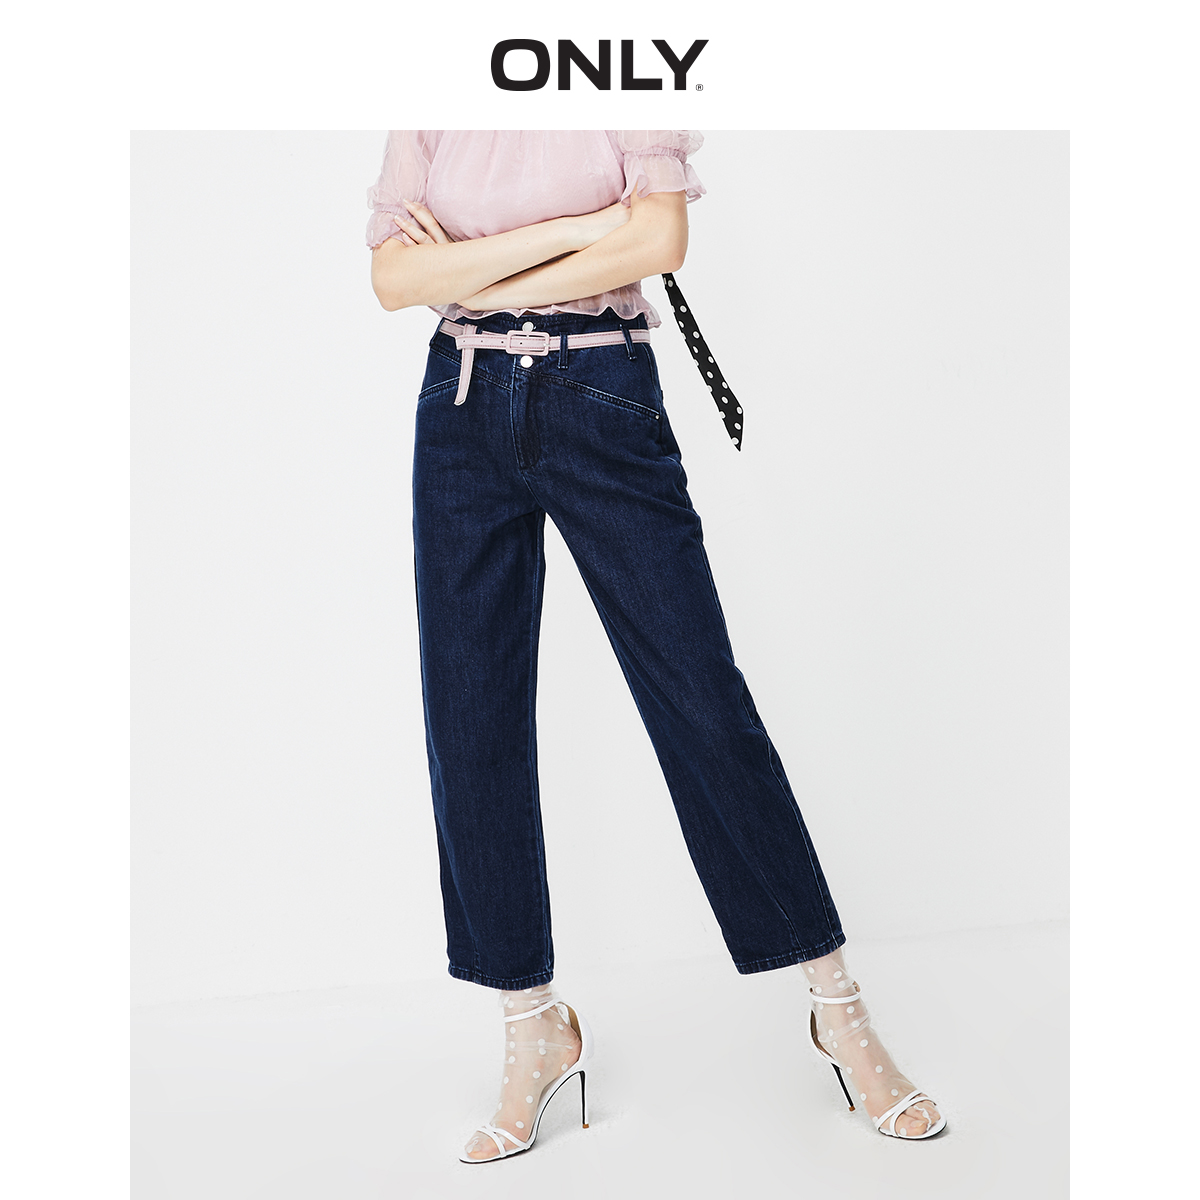 ONLY Women's Straight Fit High-rise Crop Jeans   119149537